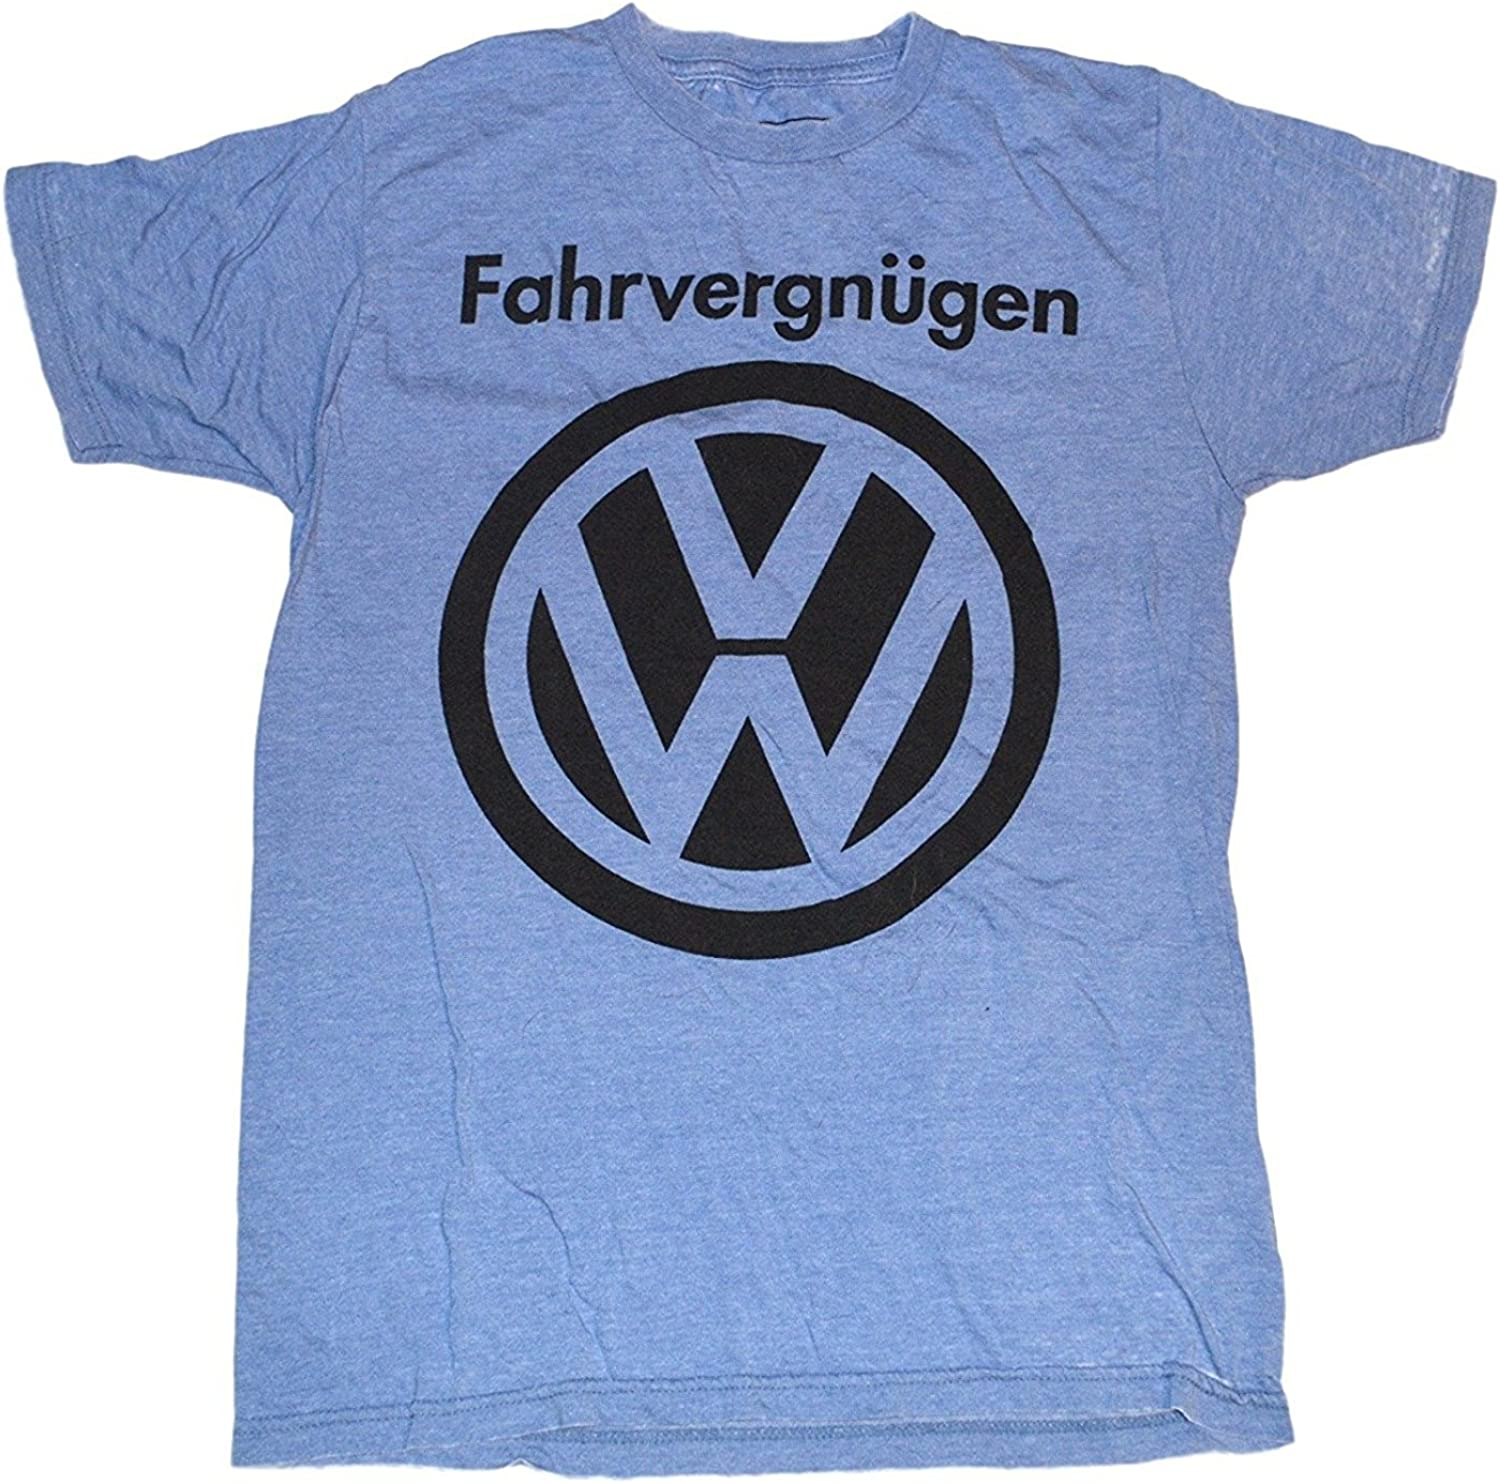 Volkswagen Vw Logo Fahrvergnugen Burnout T Shirt Mens Blue Heather Xl Amazon Ca Clothing Accessories Without business connection, similar case reference & funding, our team still successfully. volkswagen vw logo fahrvergnugen